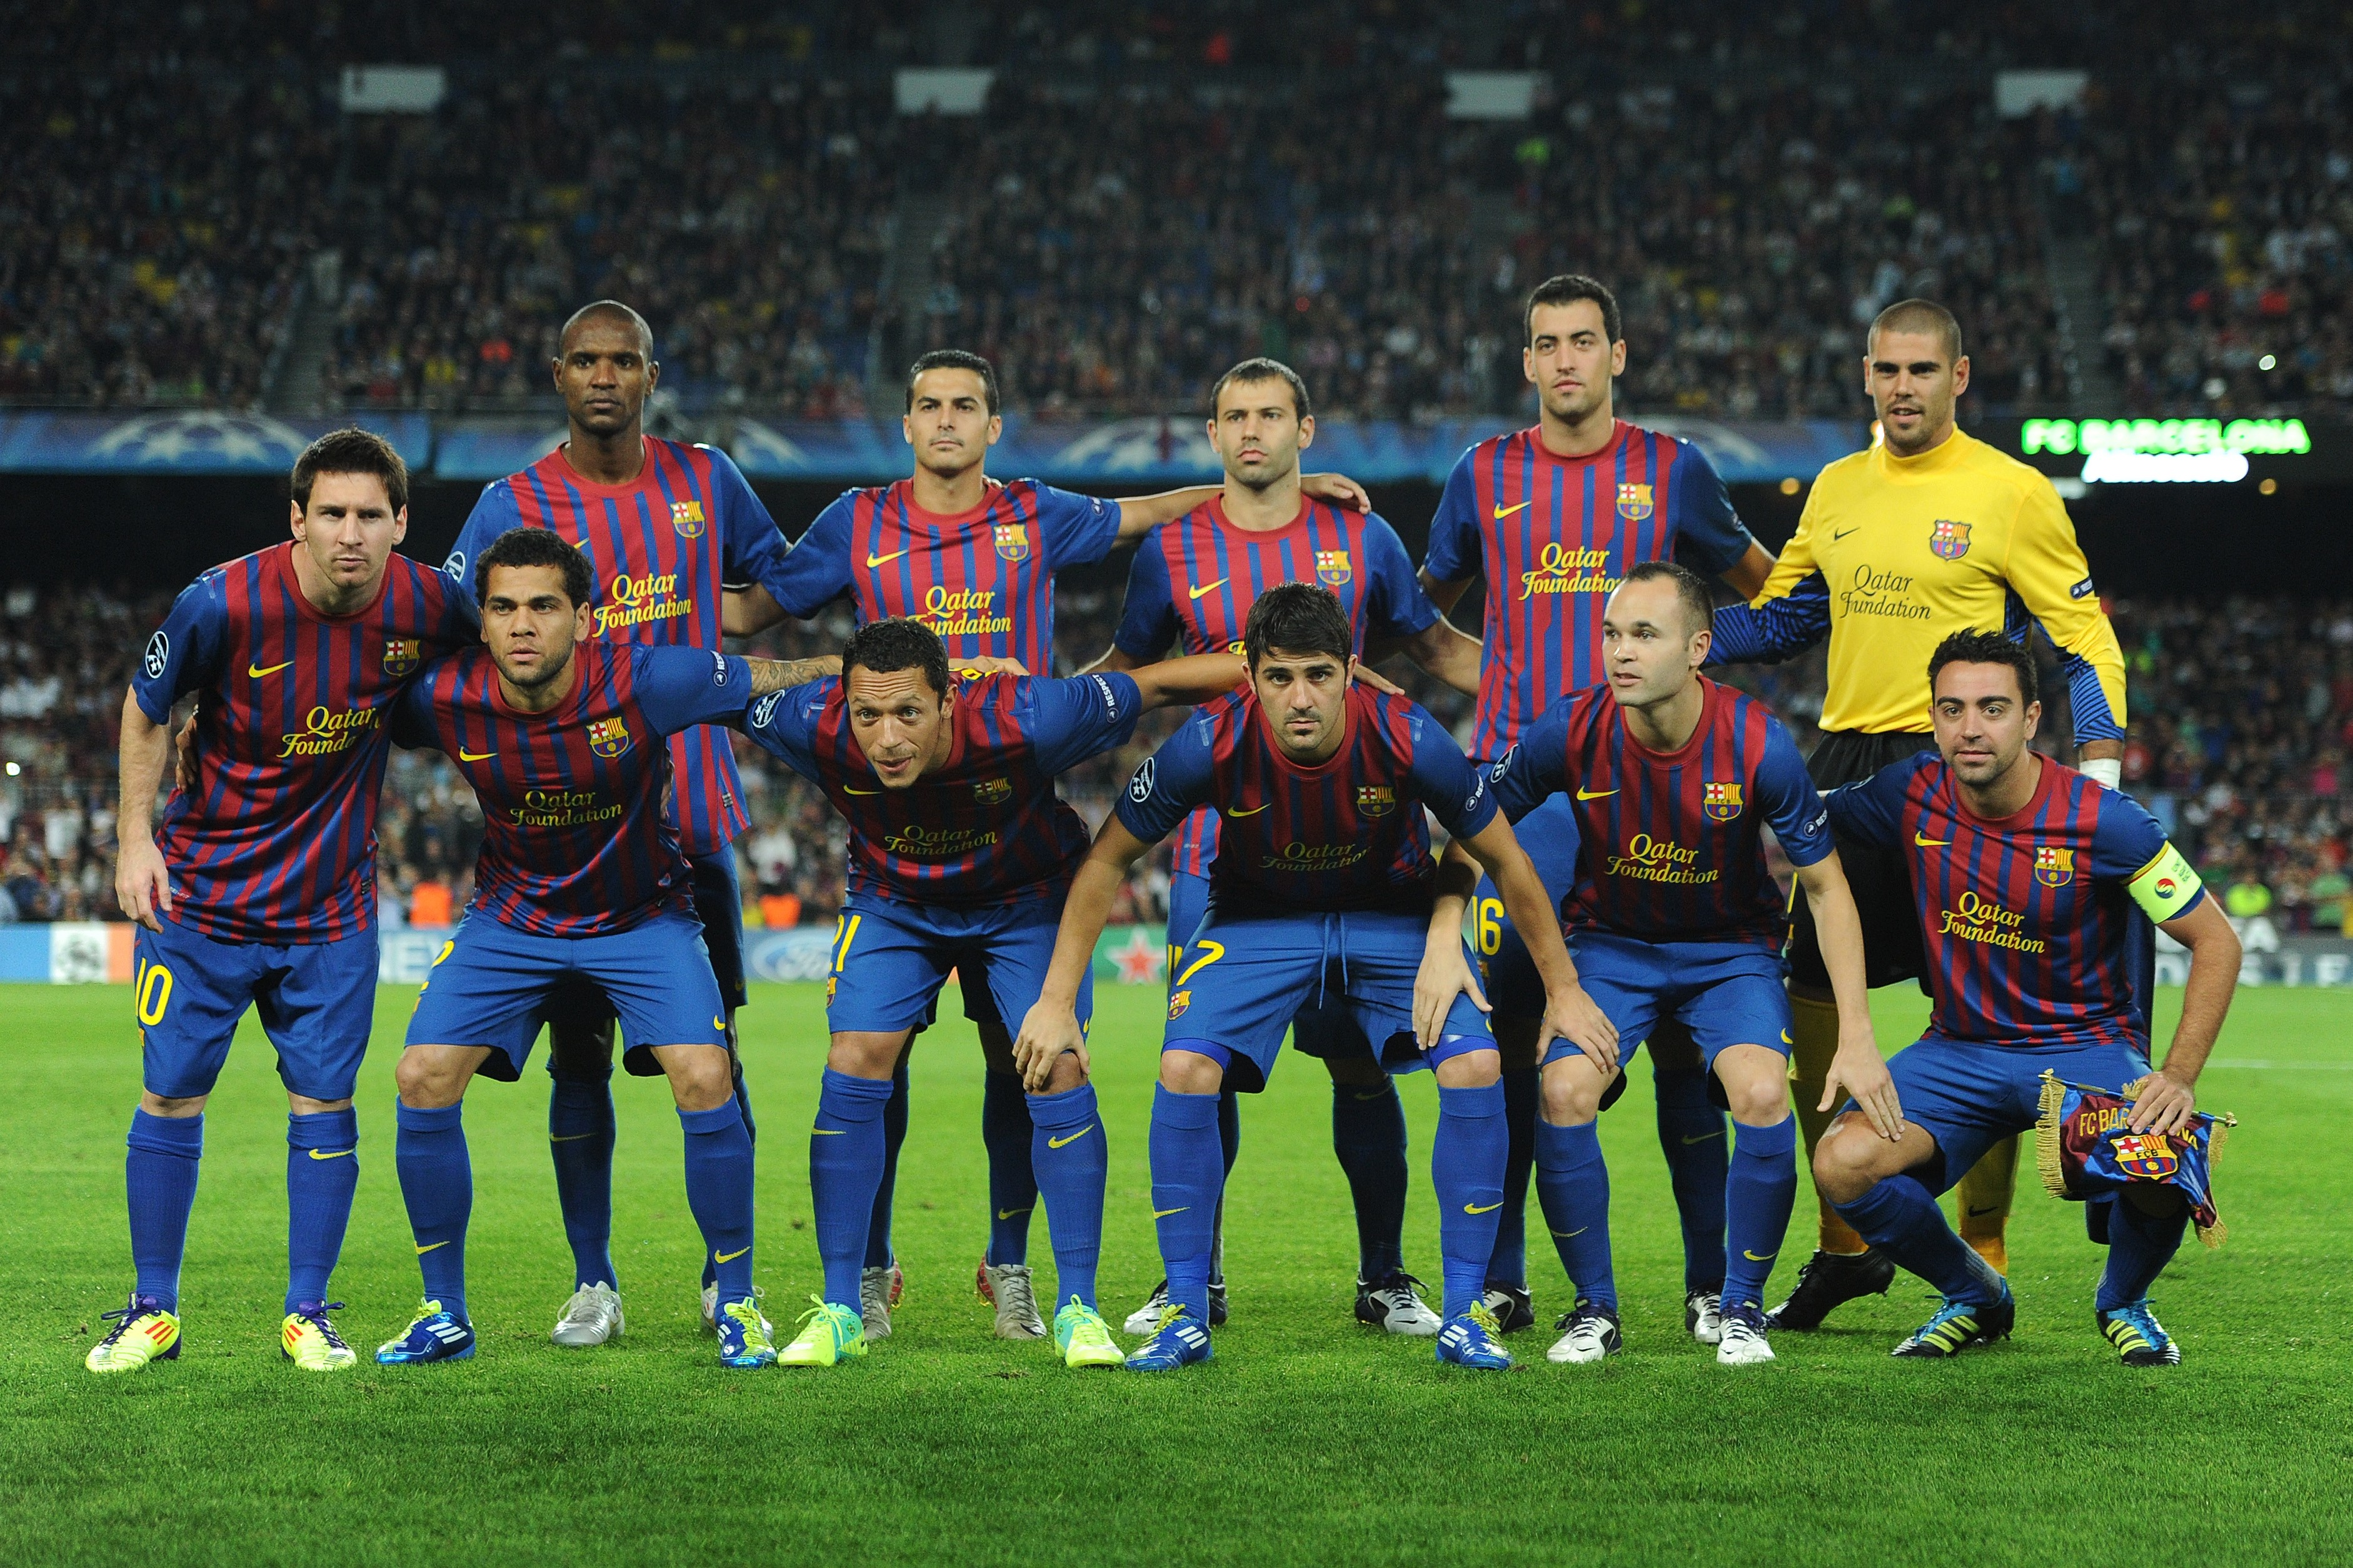 FC Barcelona UEFA Champions League Team